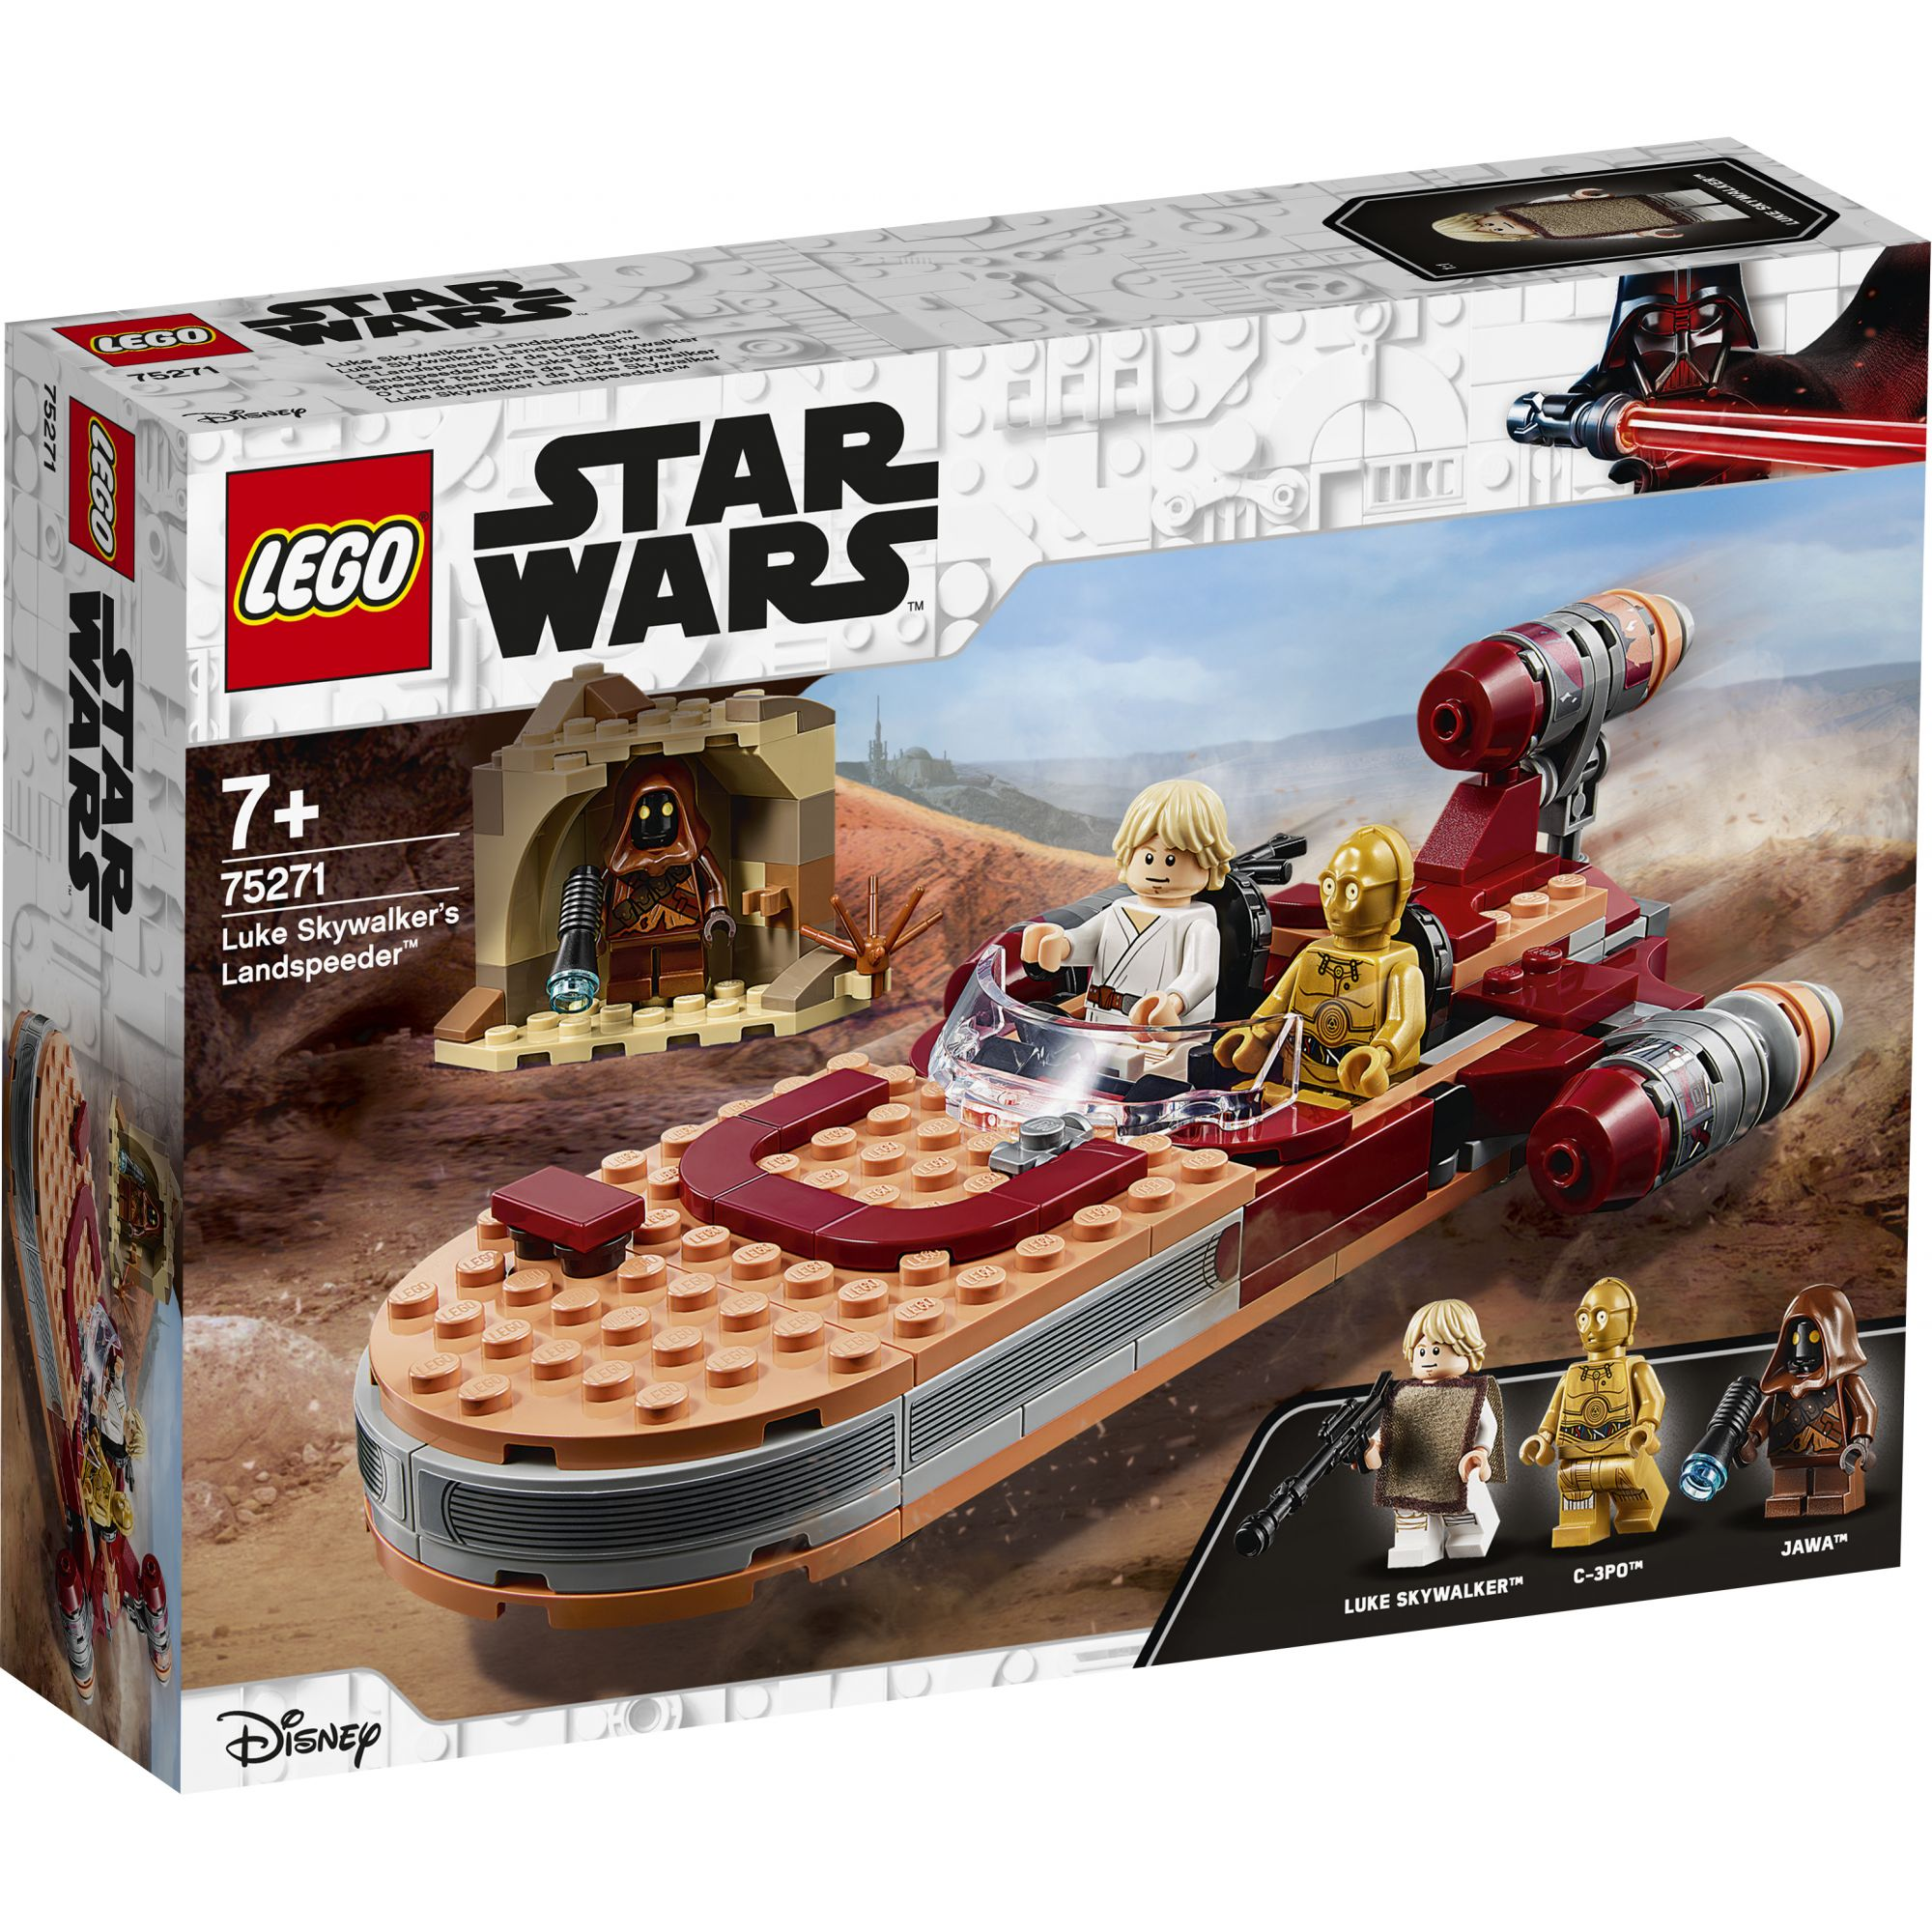 LEGO Star Wars Landspeeder di Luke Skywalker - 75271